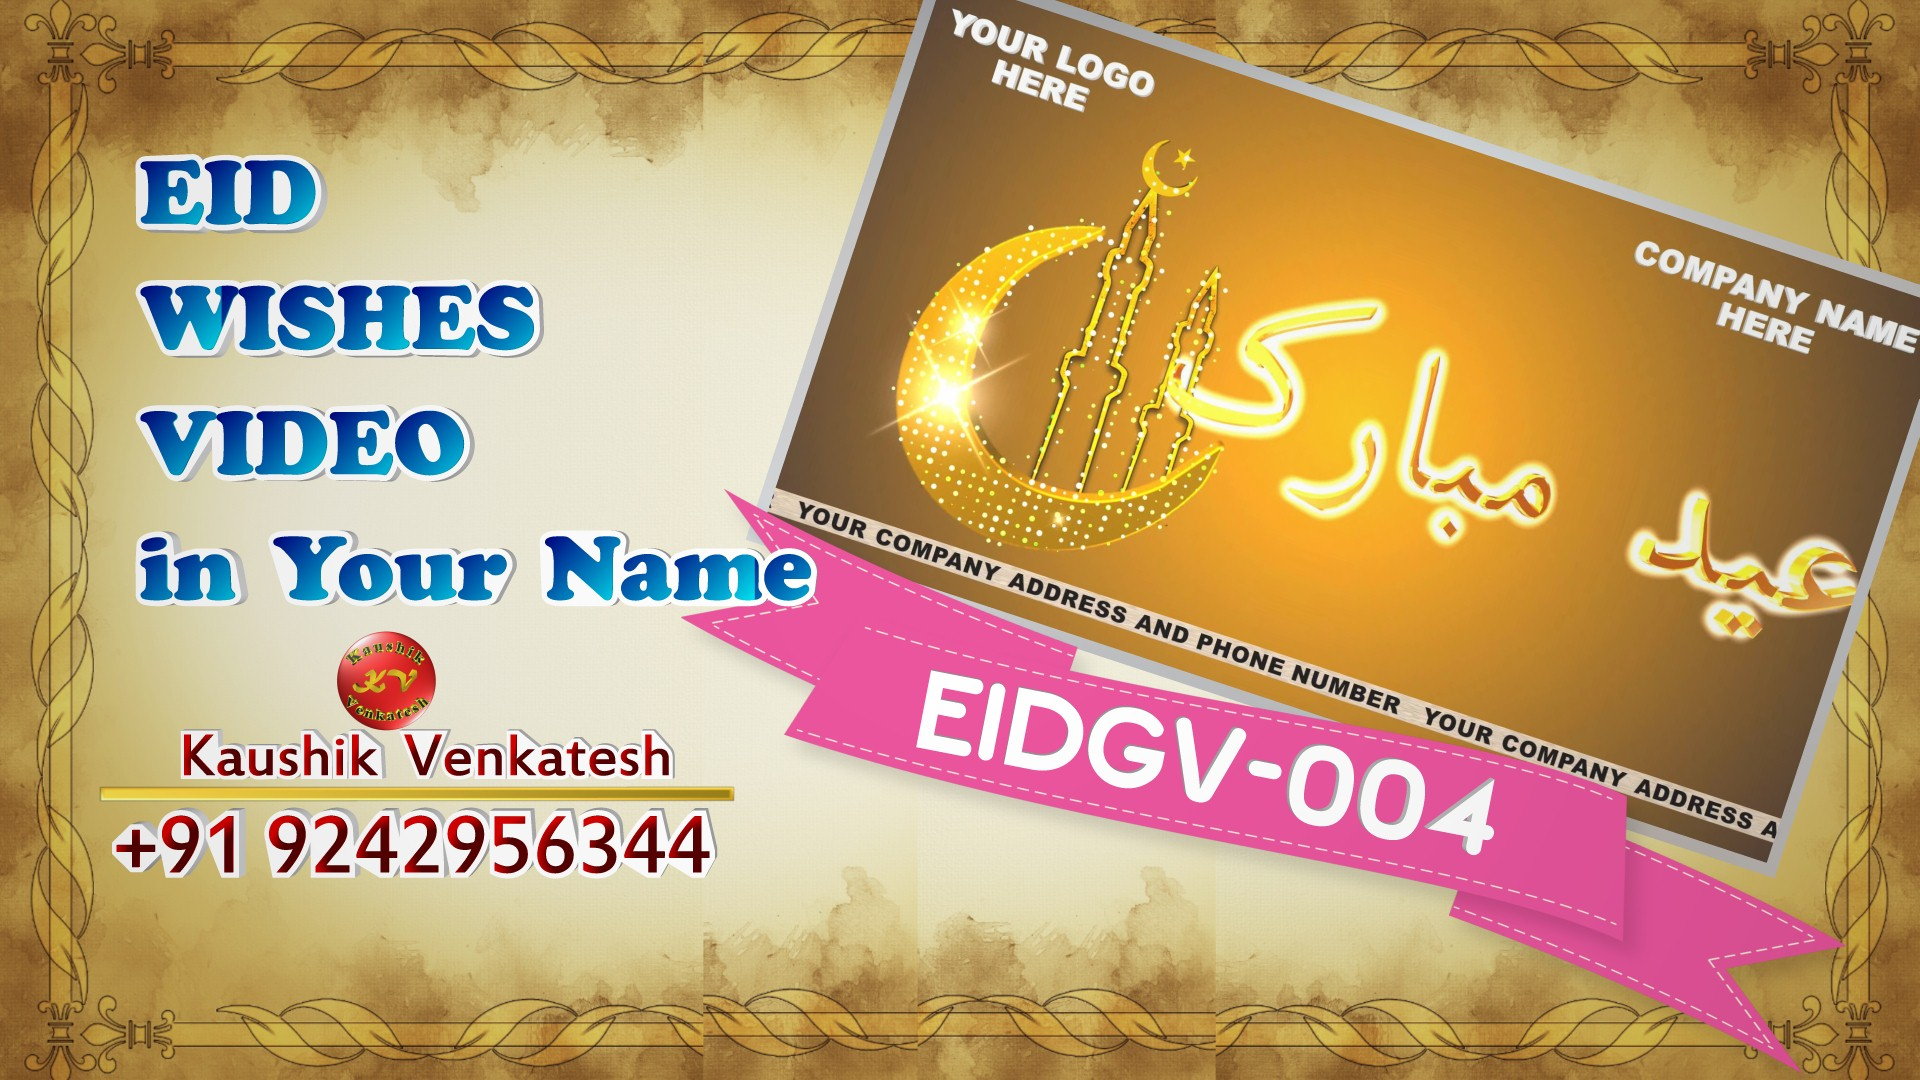 Product Image of Personalized Eid Mubarak Greetings for clients